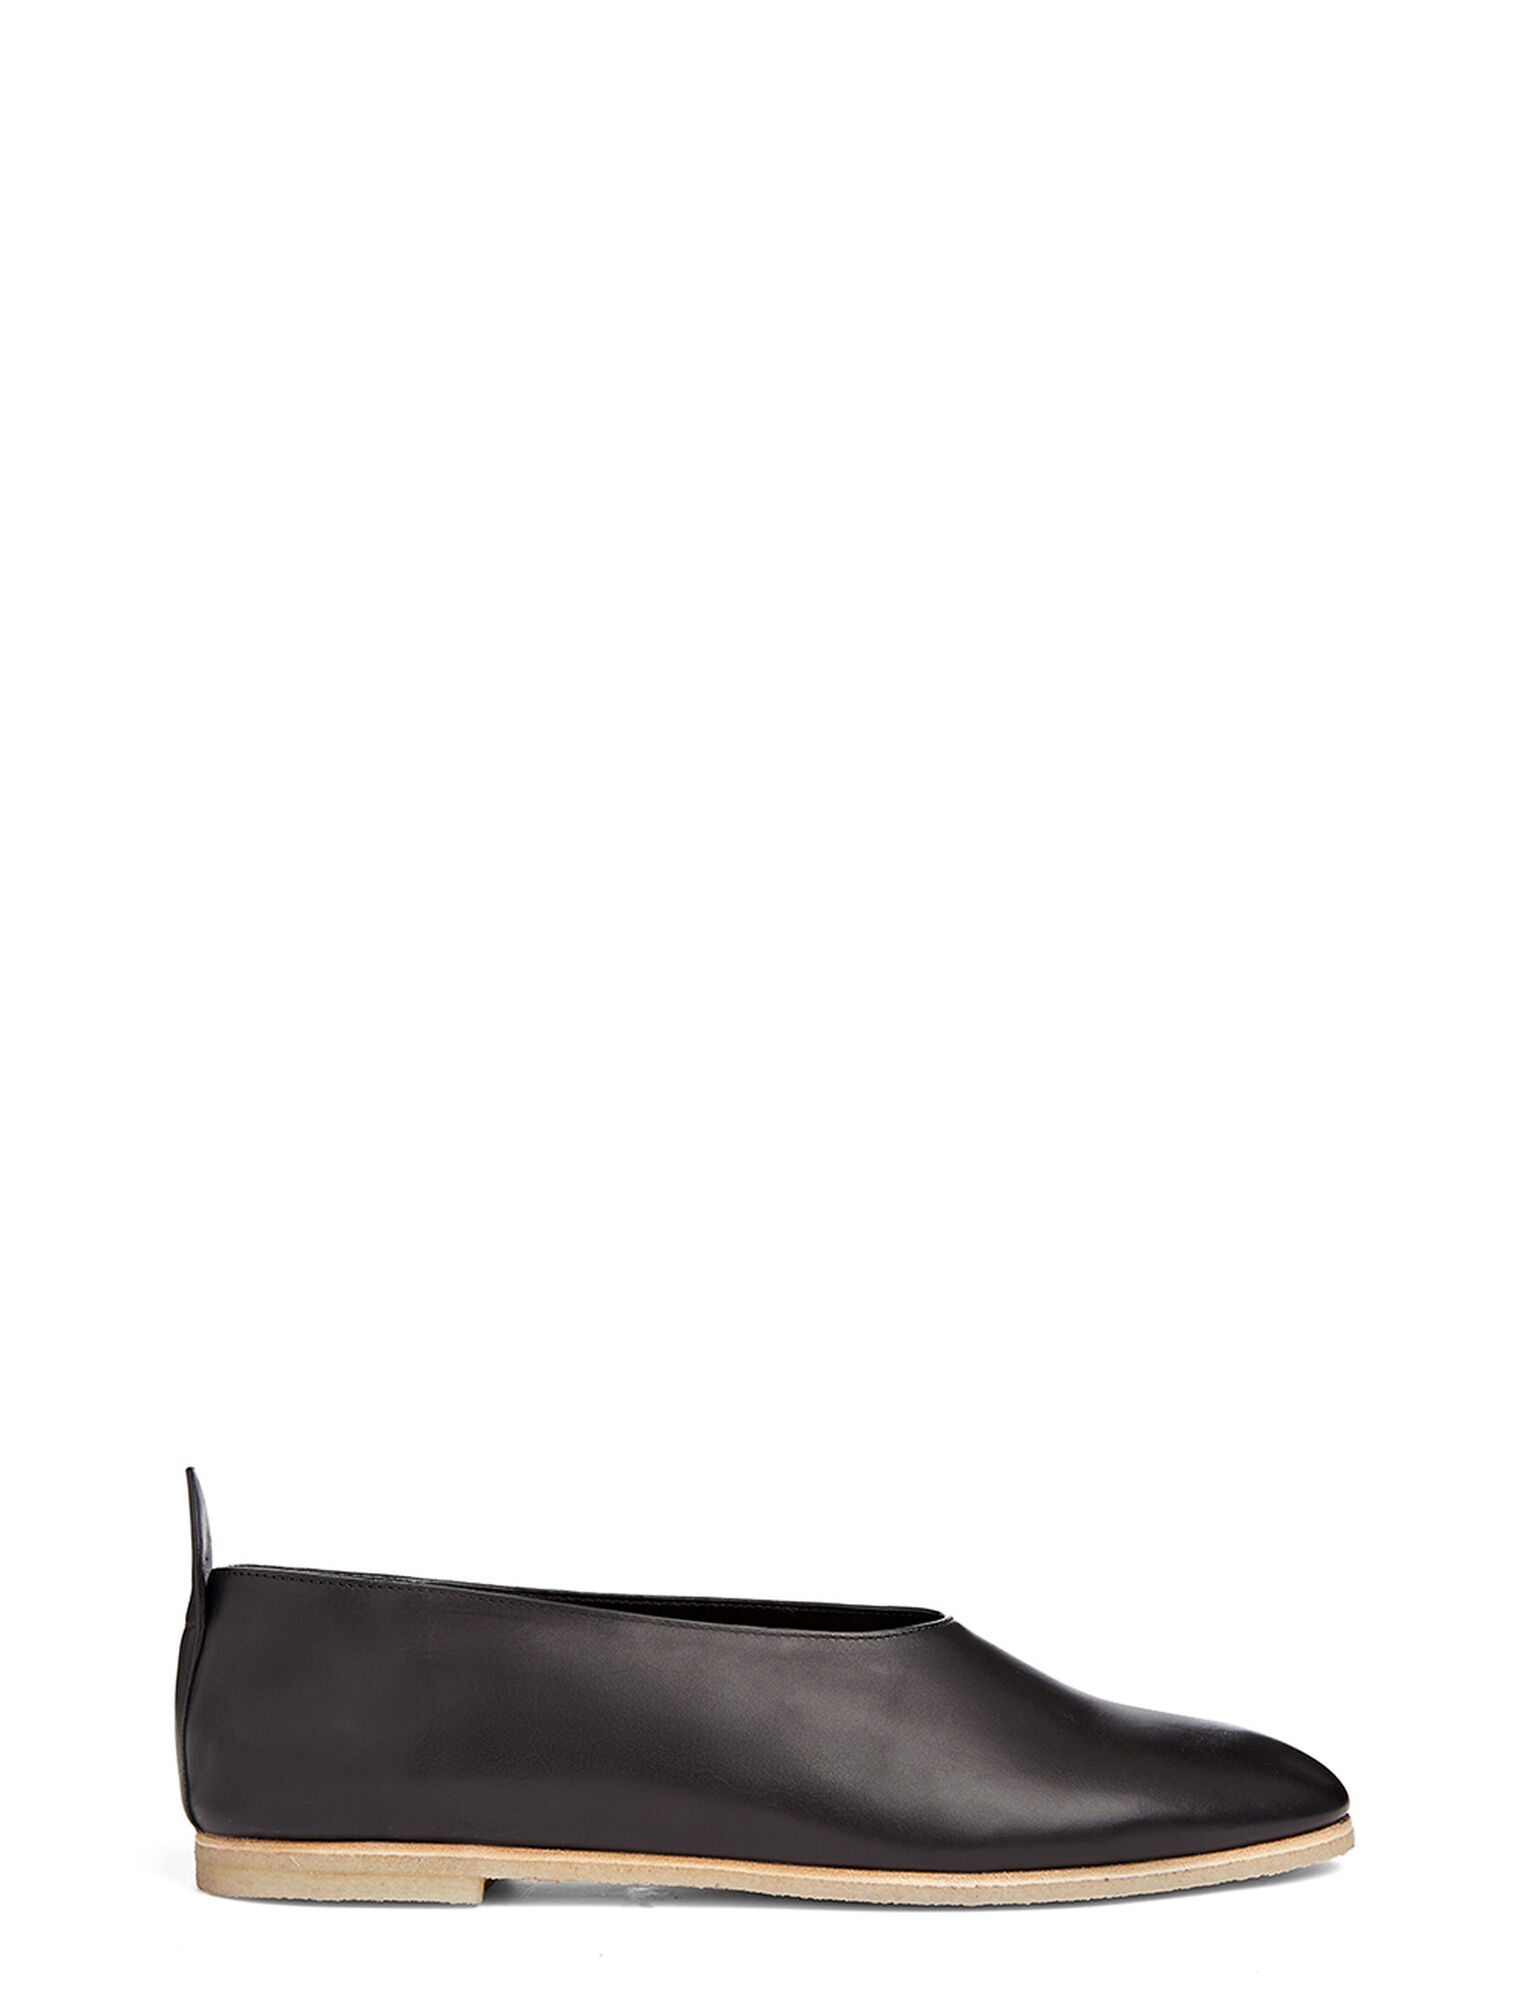 Joseph, Calf Leather Ballerina, in BLACK